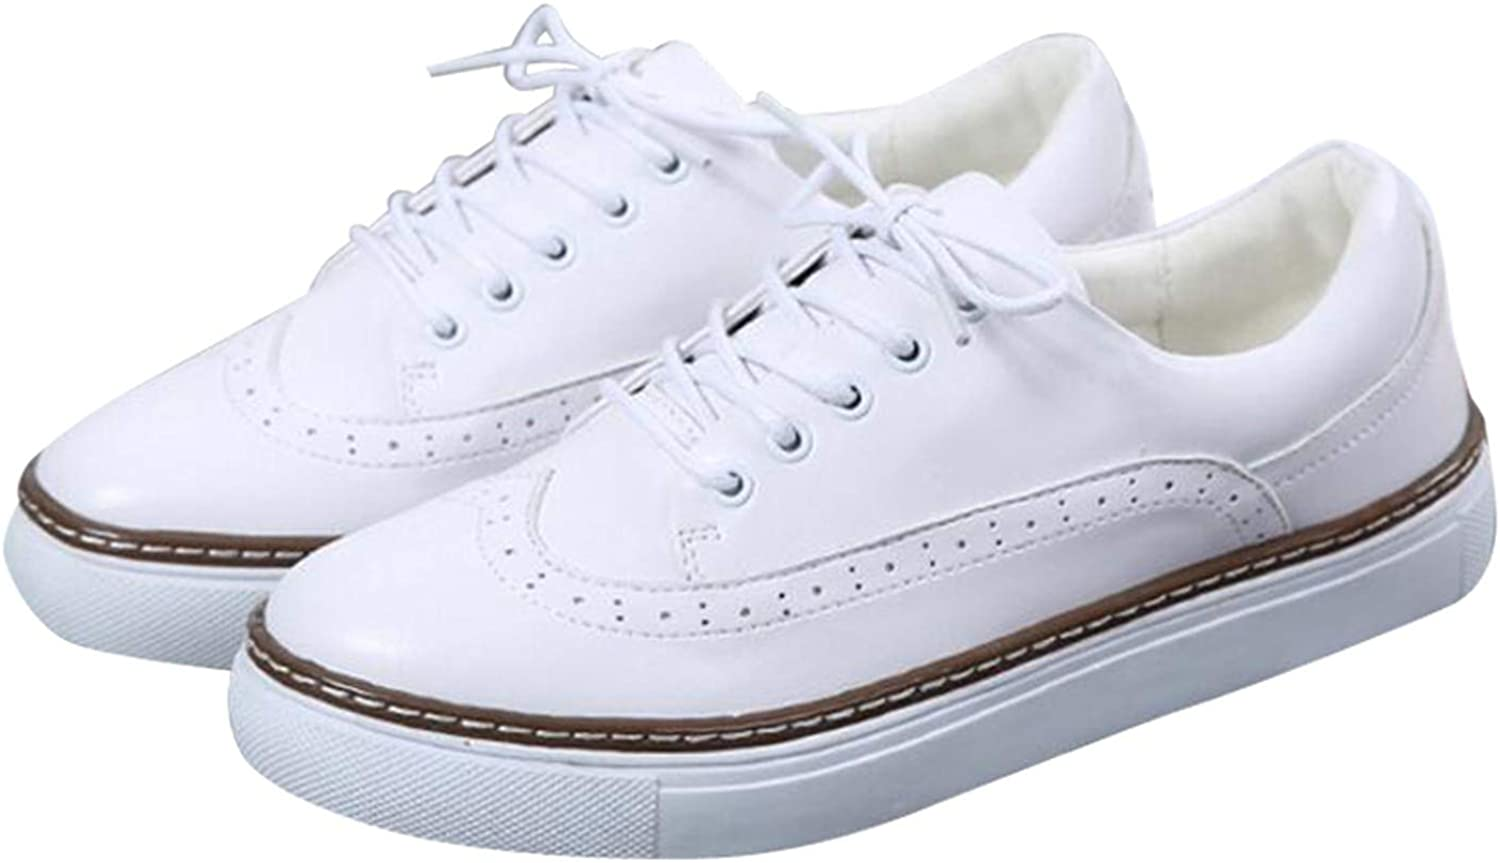 White Island 2019 Women Flat shoes Breathable Ladies Leather shoes Summer Autumn Lace up Casual Women shoes New